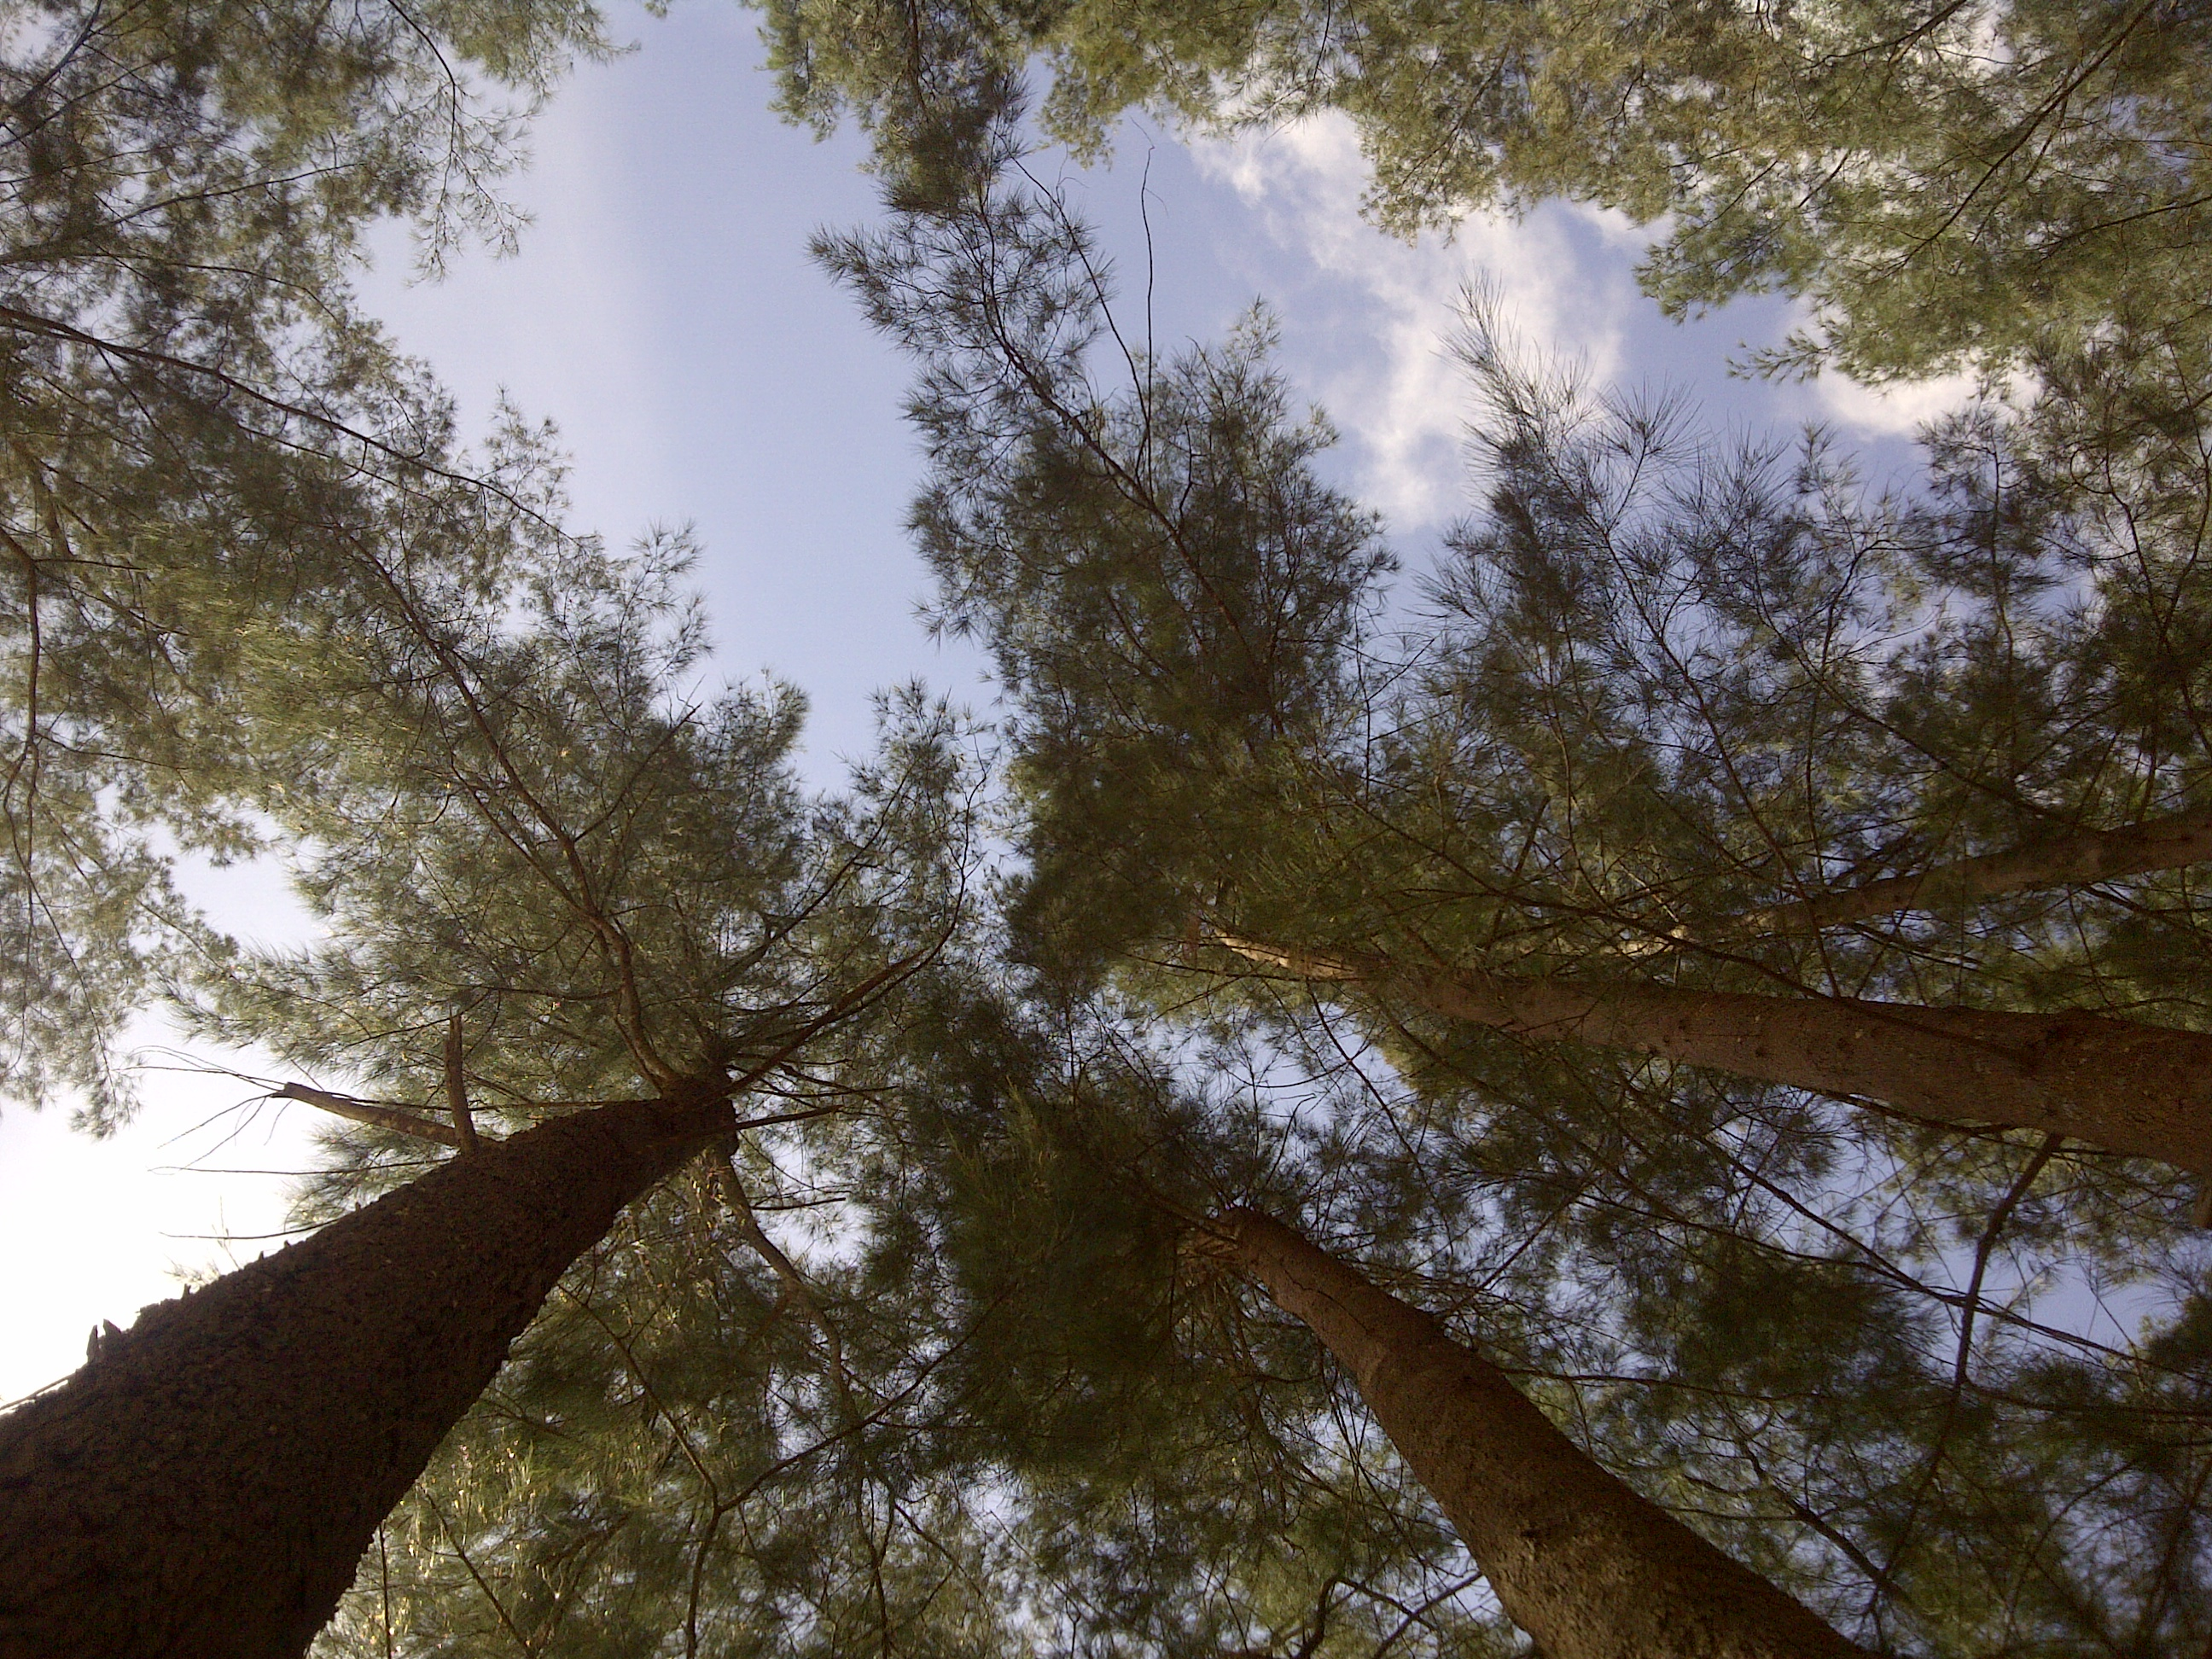 Green trees, Bend, Forest, Green, Jungle, HQ Photo